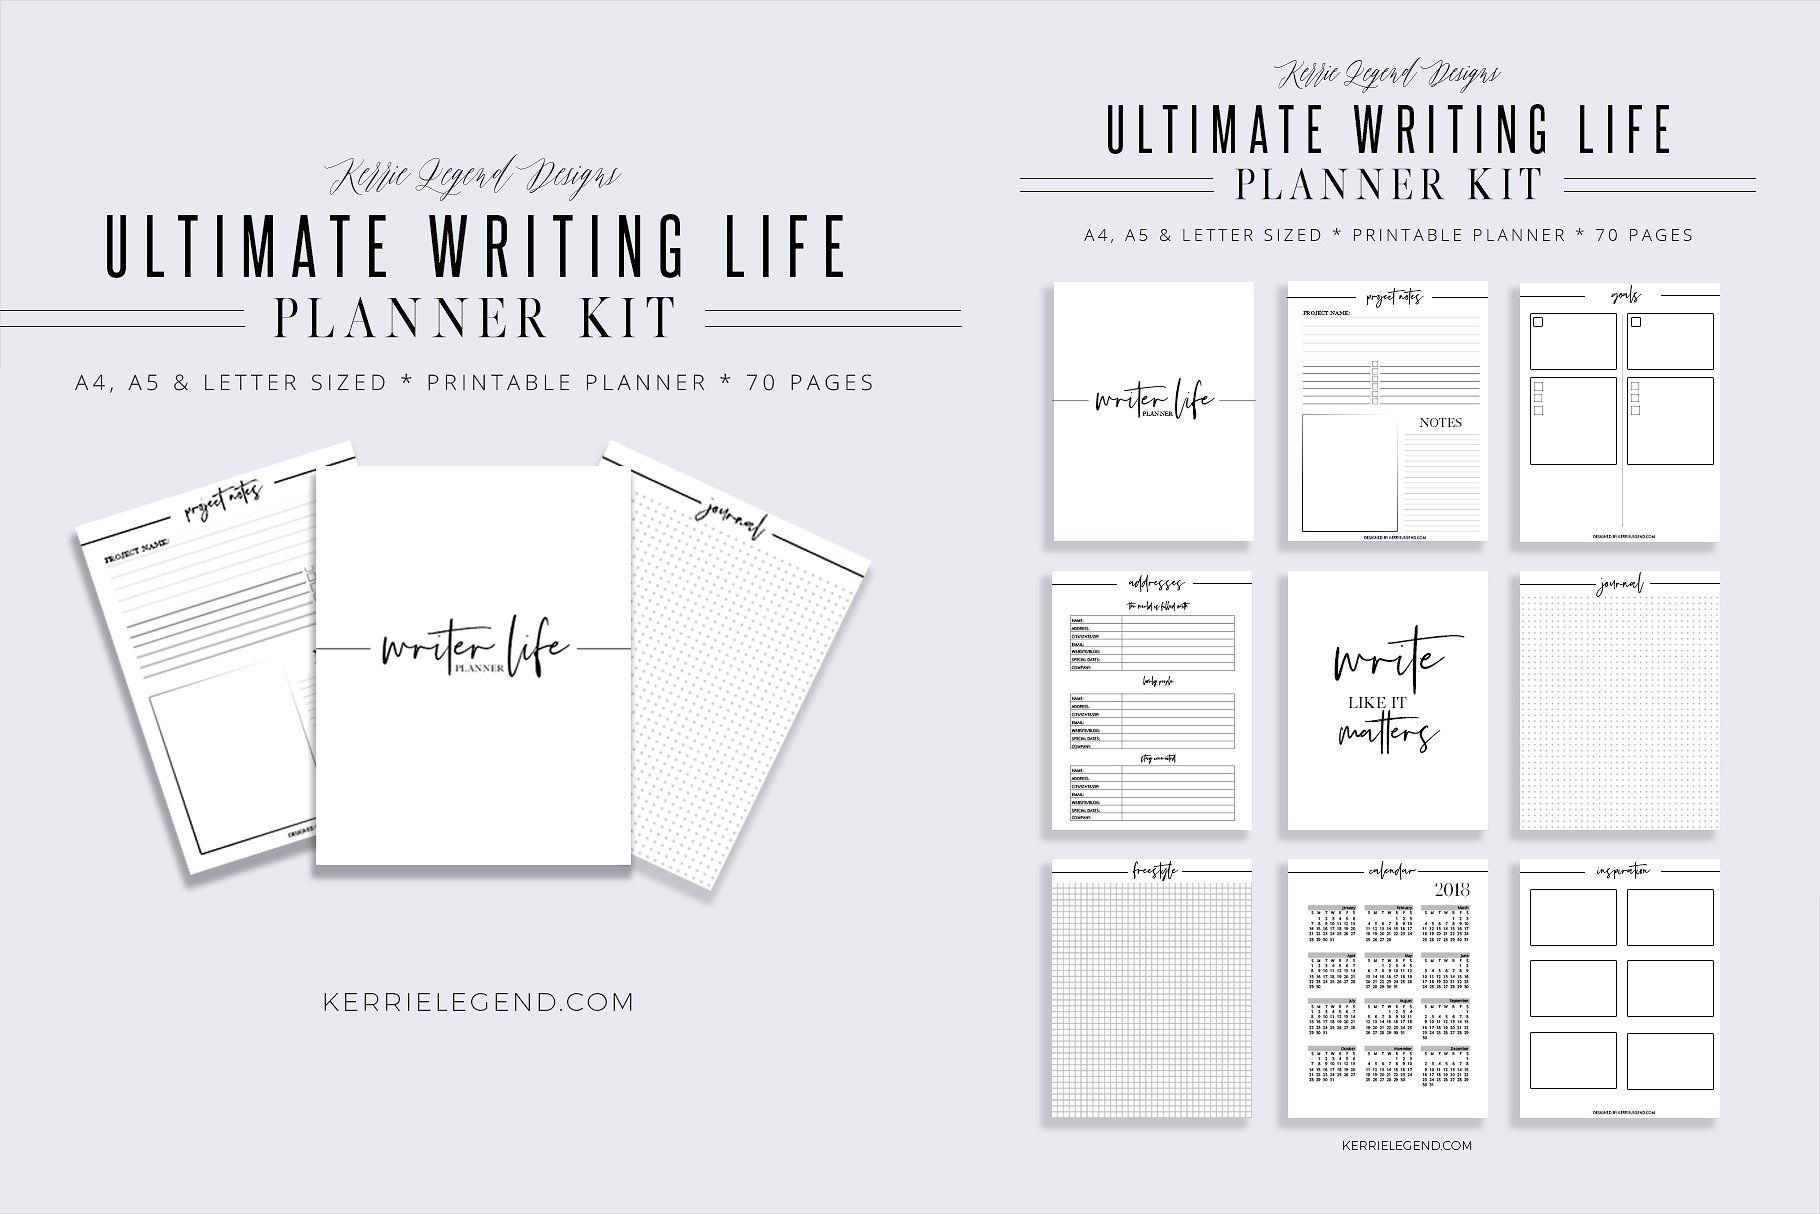 Ultimate Writer Life Planner Kit by Kerrie Legend Designs on